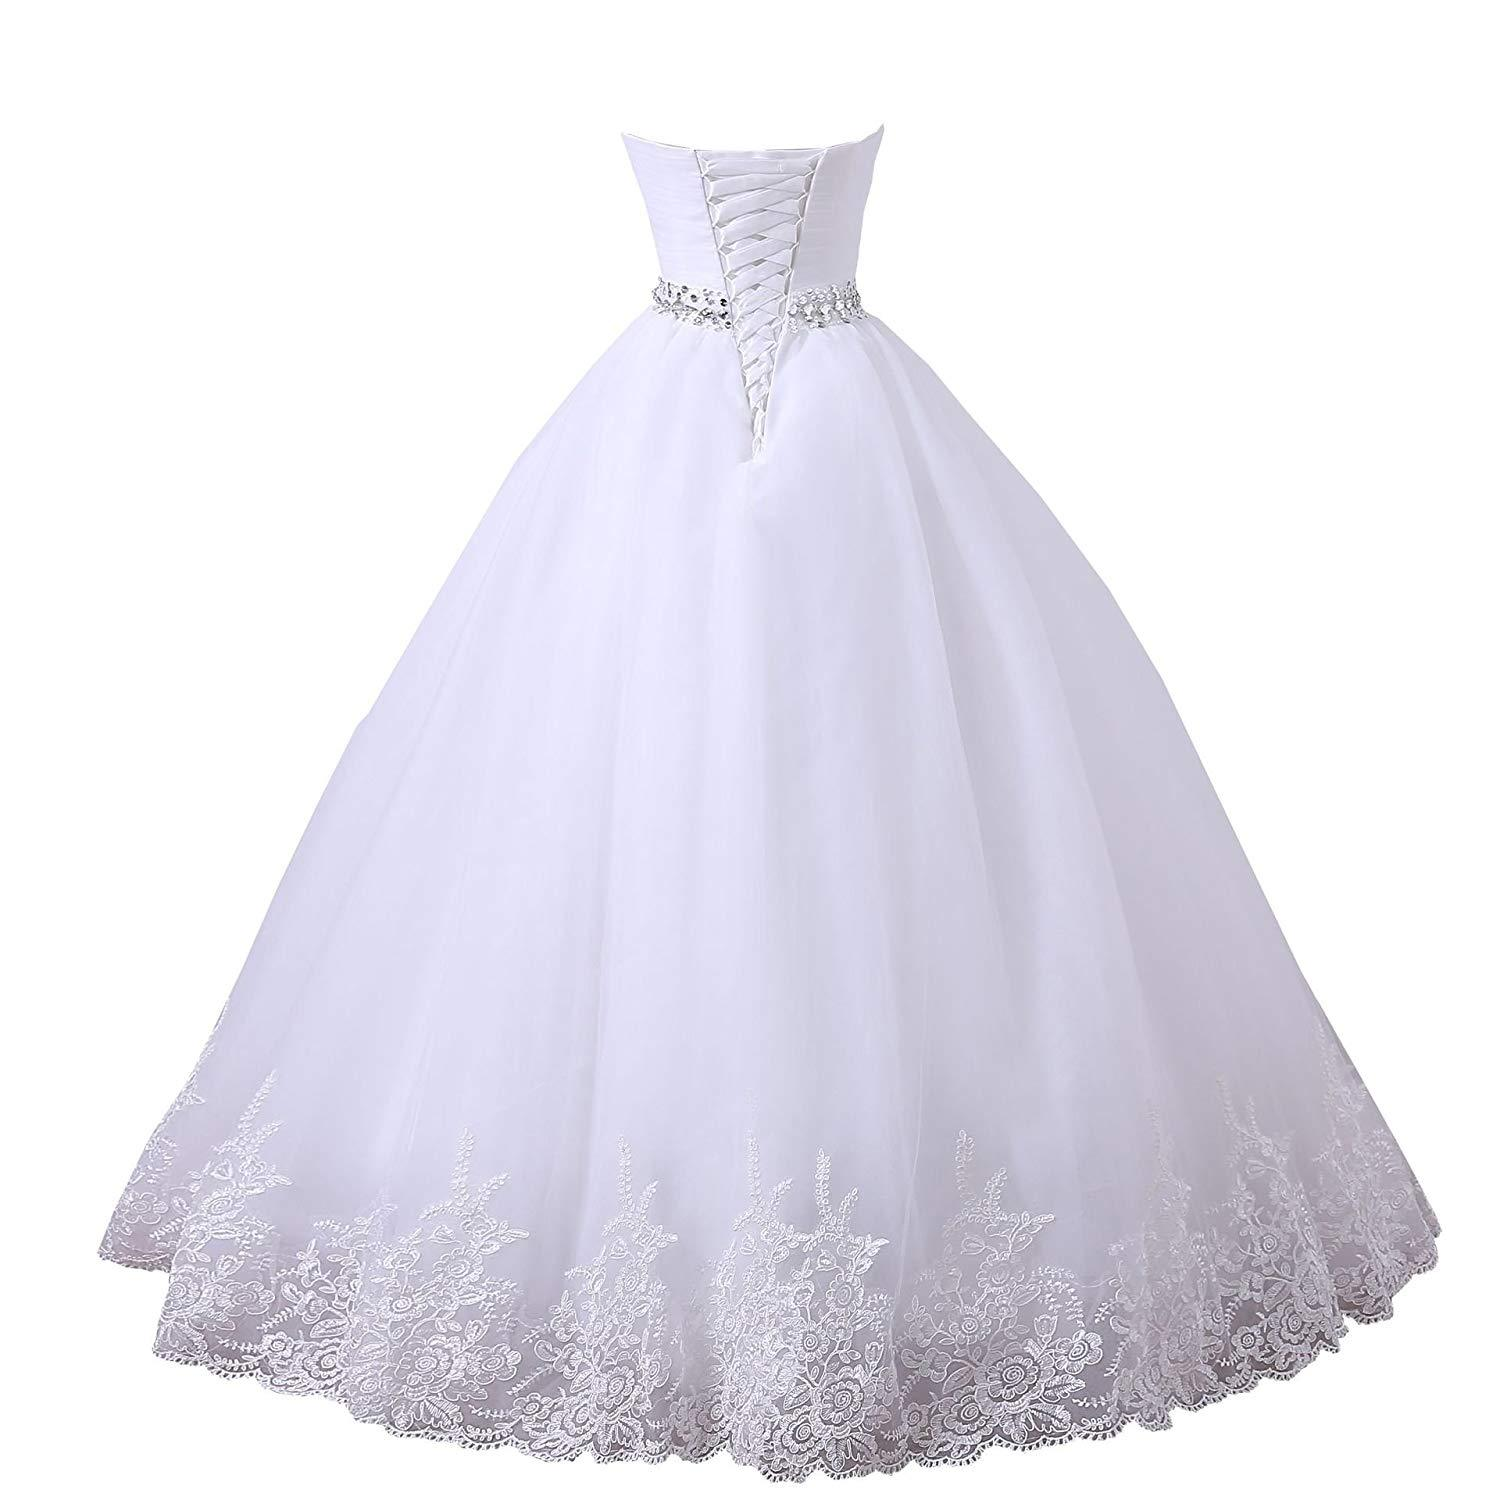 Sweetheart Tulle Lace Applique Wedding Dresses Beaded Bridal Dress Ball Gowns